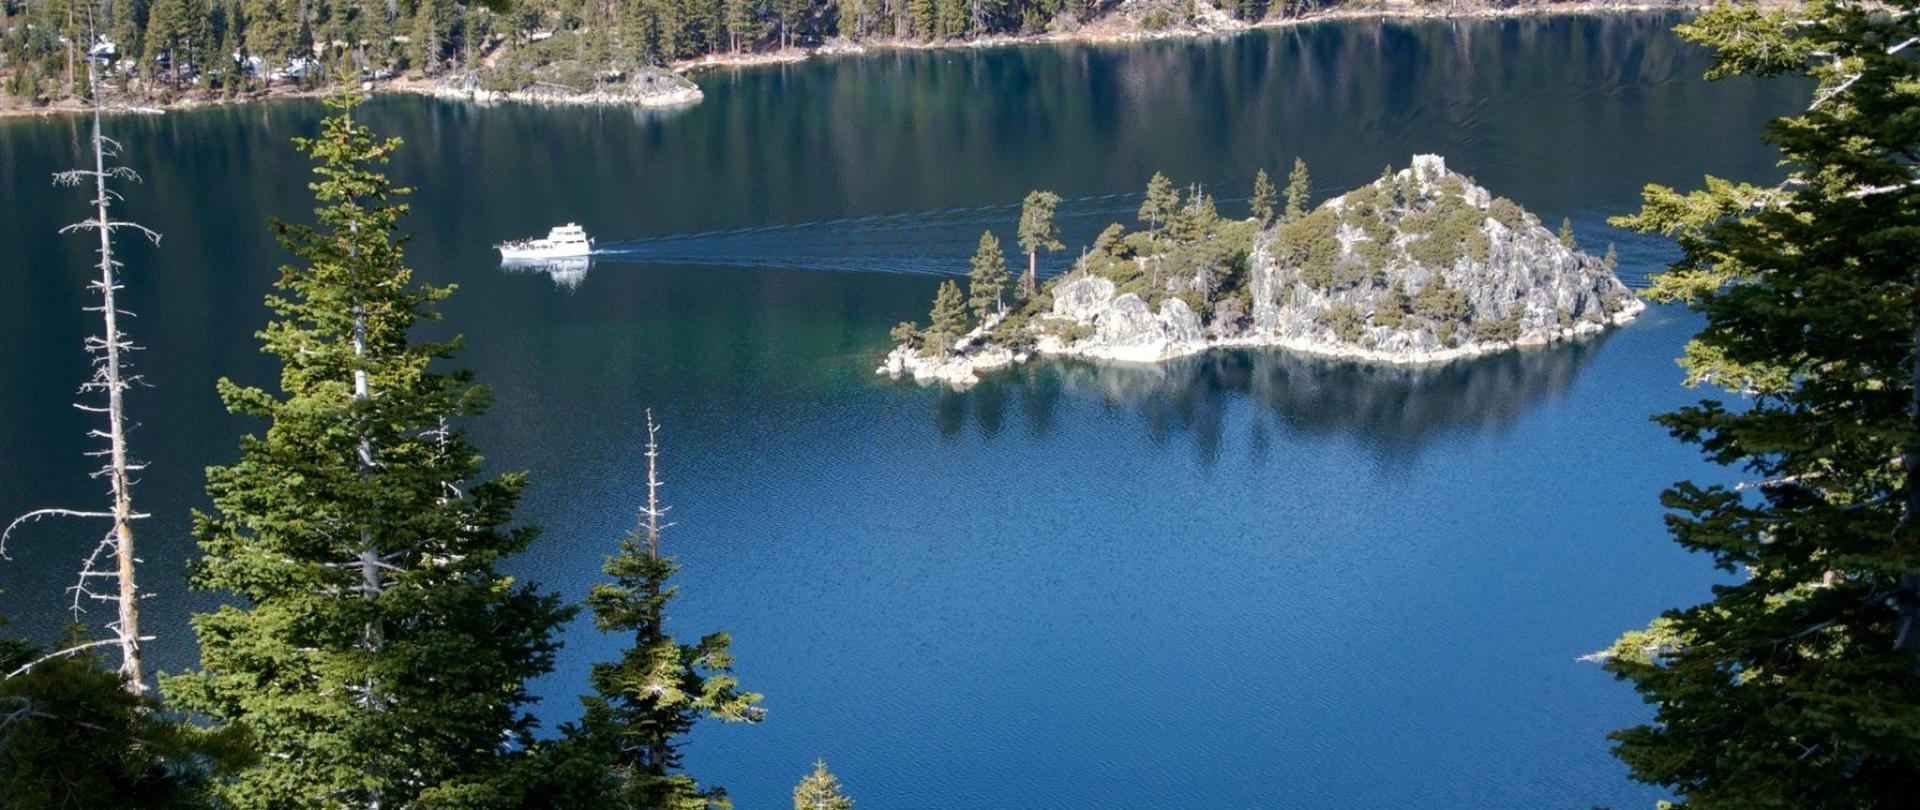 fannette_island-_emerald_bay-_south_lake_tahoe.jpg